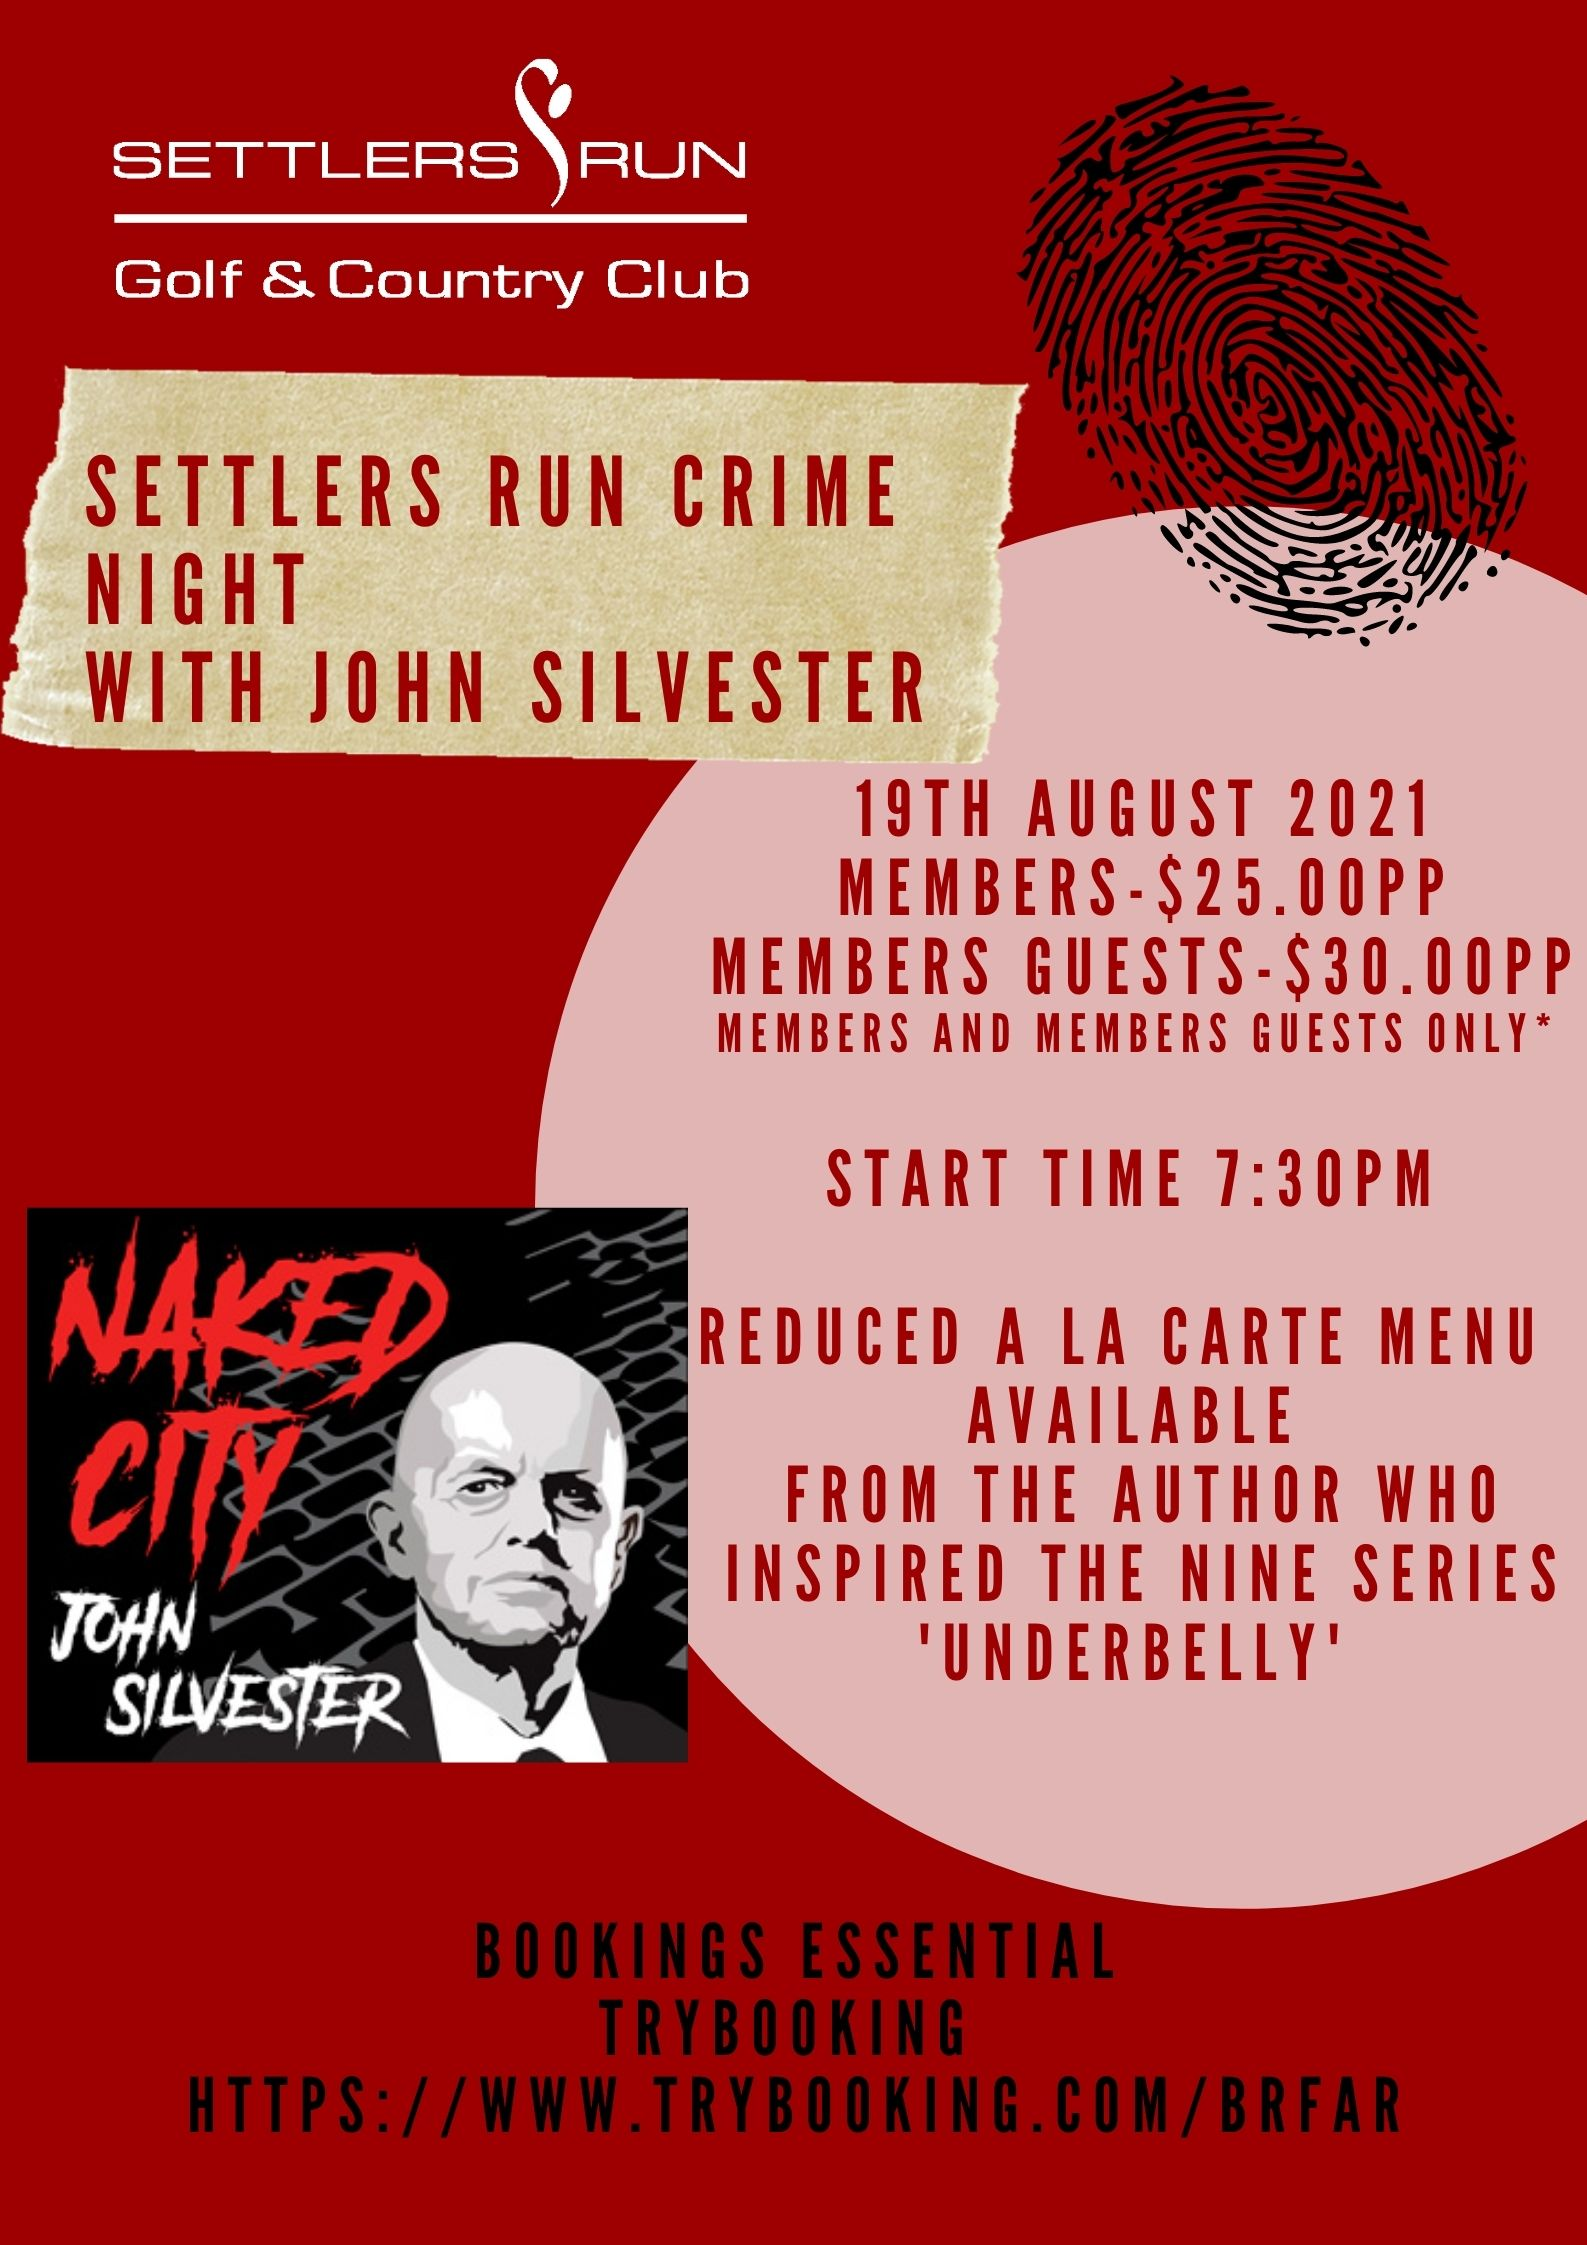 Crime Night with John Silvester